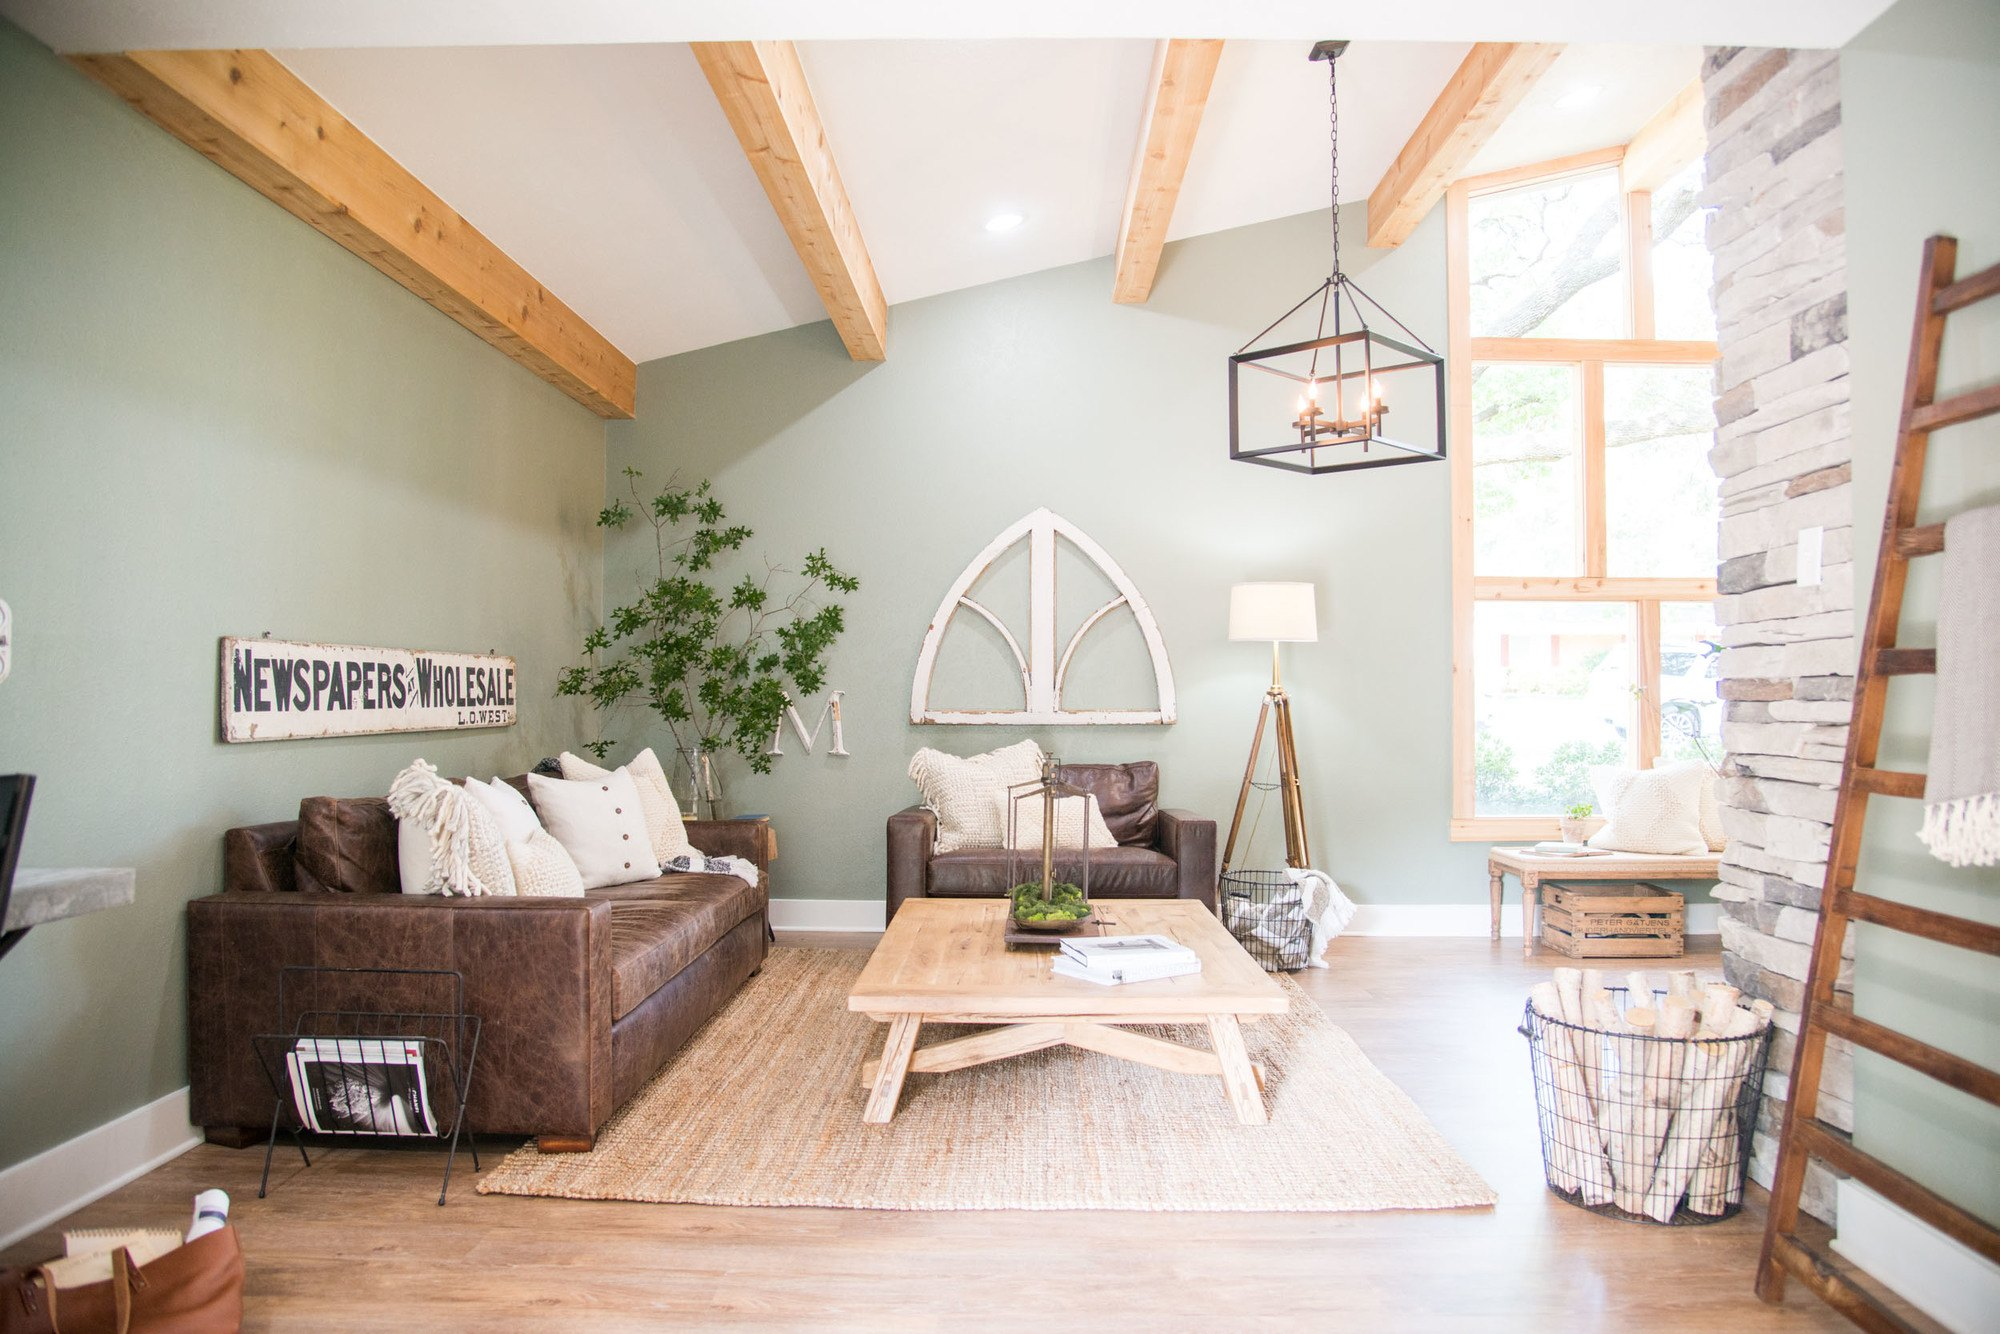 living room colors joanna gaines paint ideas photos how to choose the perfect farmhouse anyway is relatively dark with few windows and white shade on wall really makes it feel bright airy